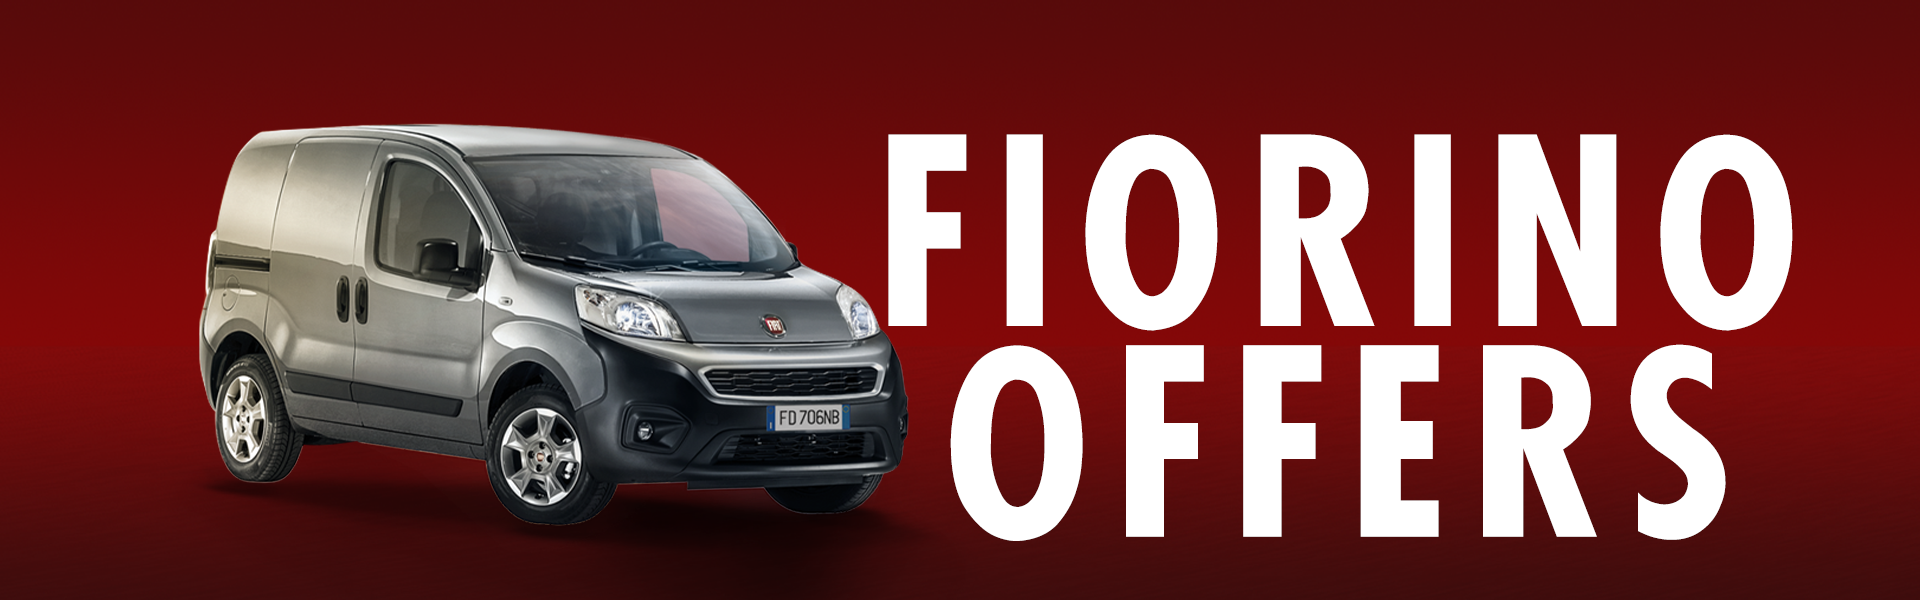 wide-banner-Fiorino offers.png